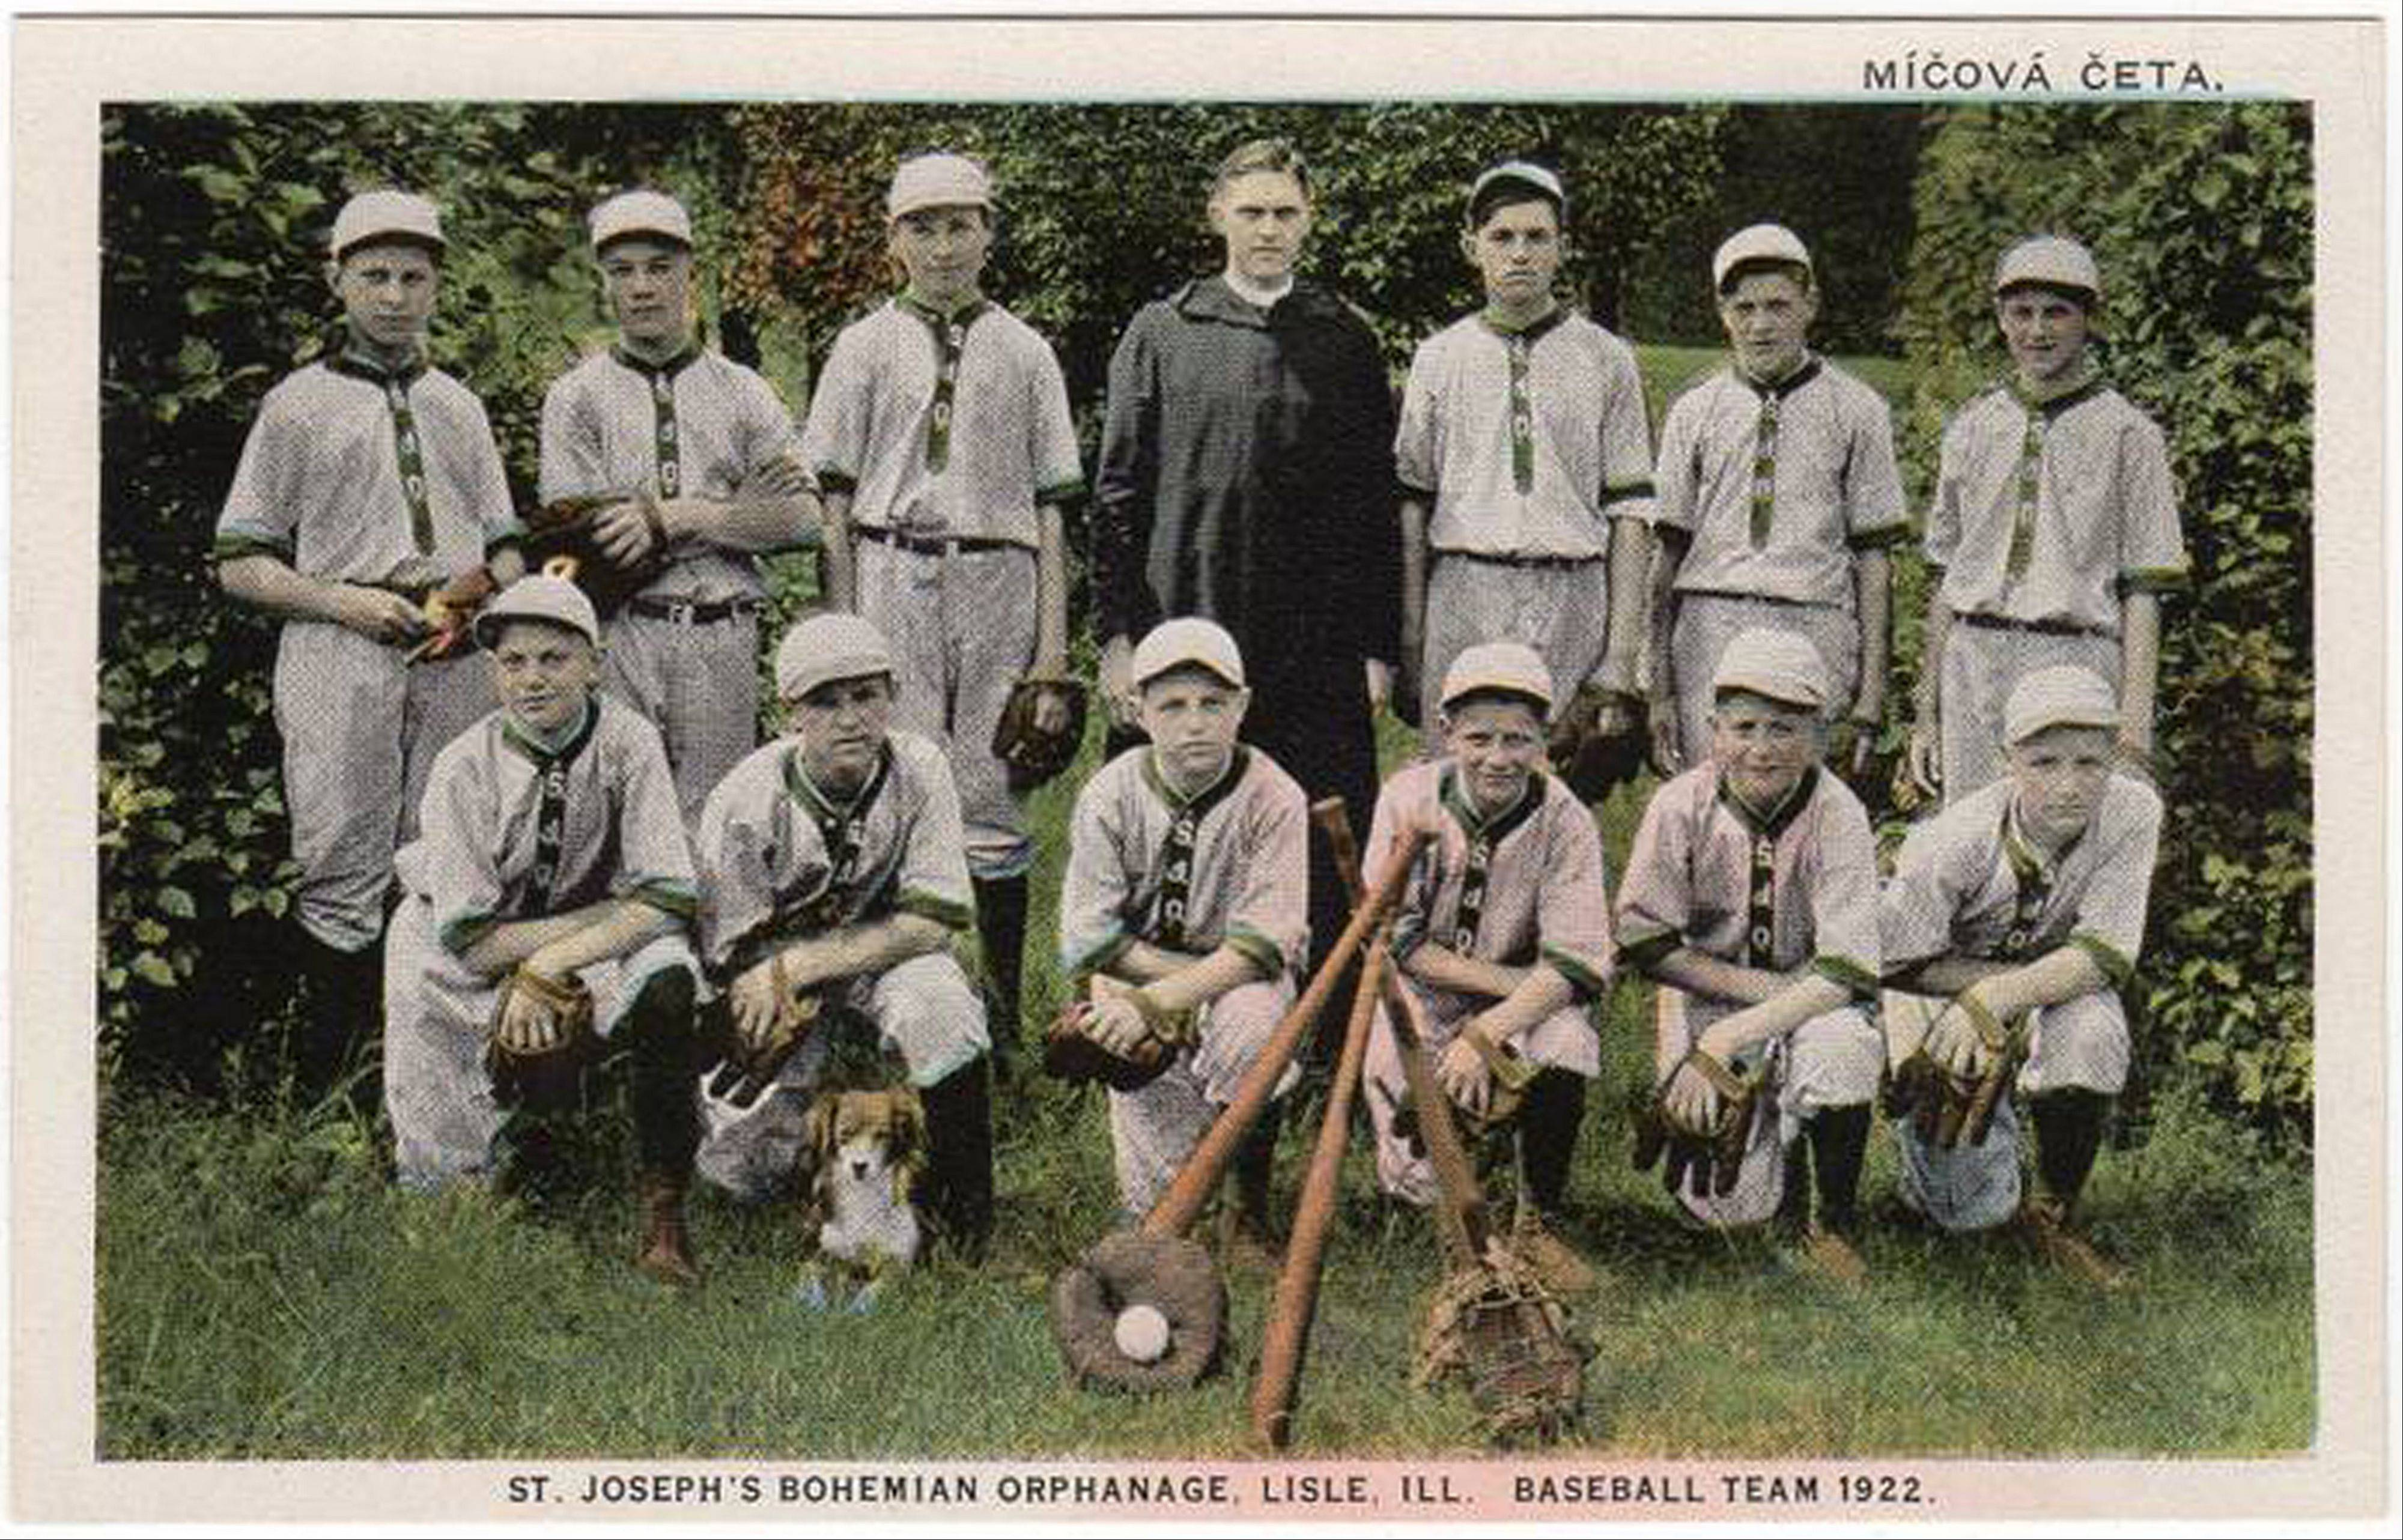 The St. Joseph's Bohemian Orphanage baseball team of 1922, preserved on a postcard.